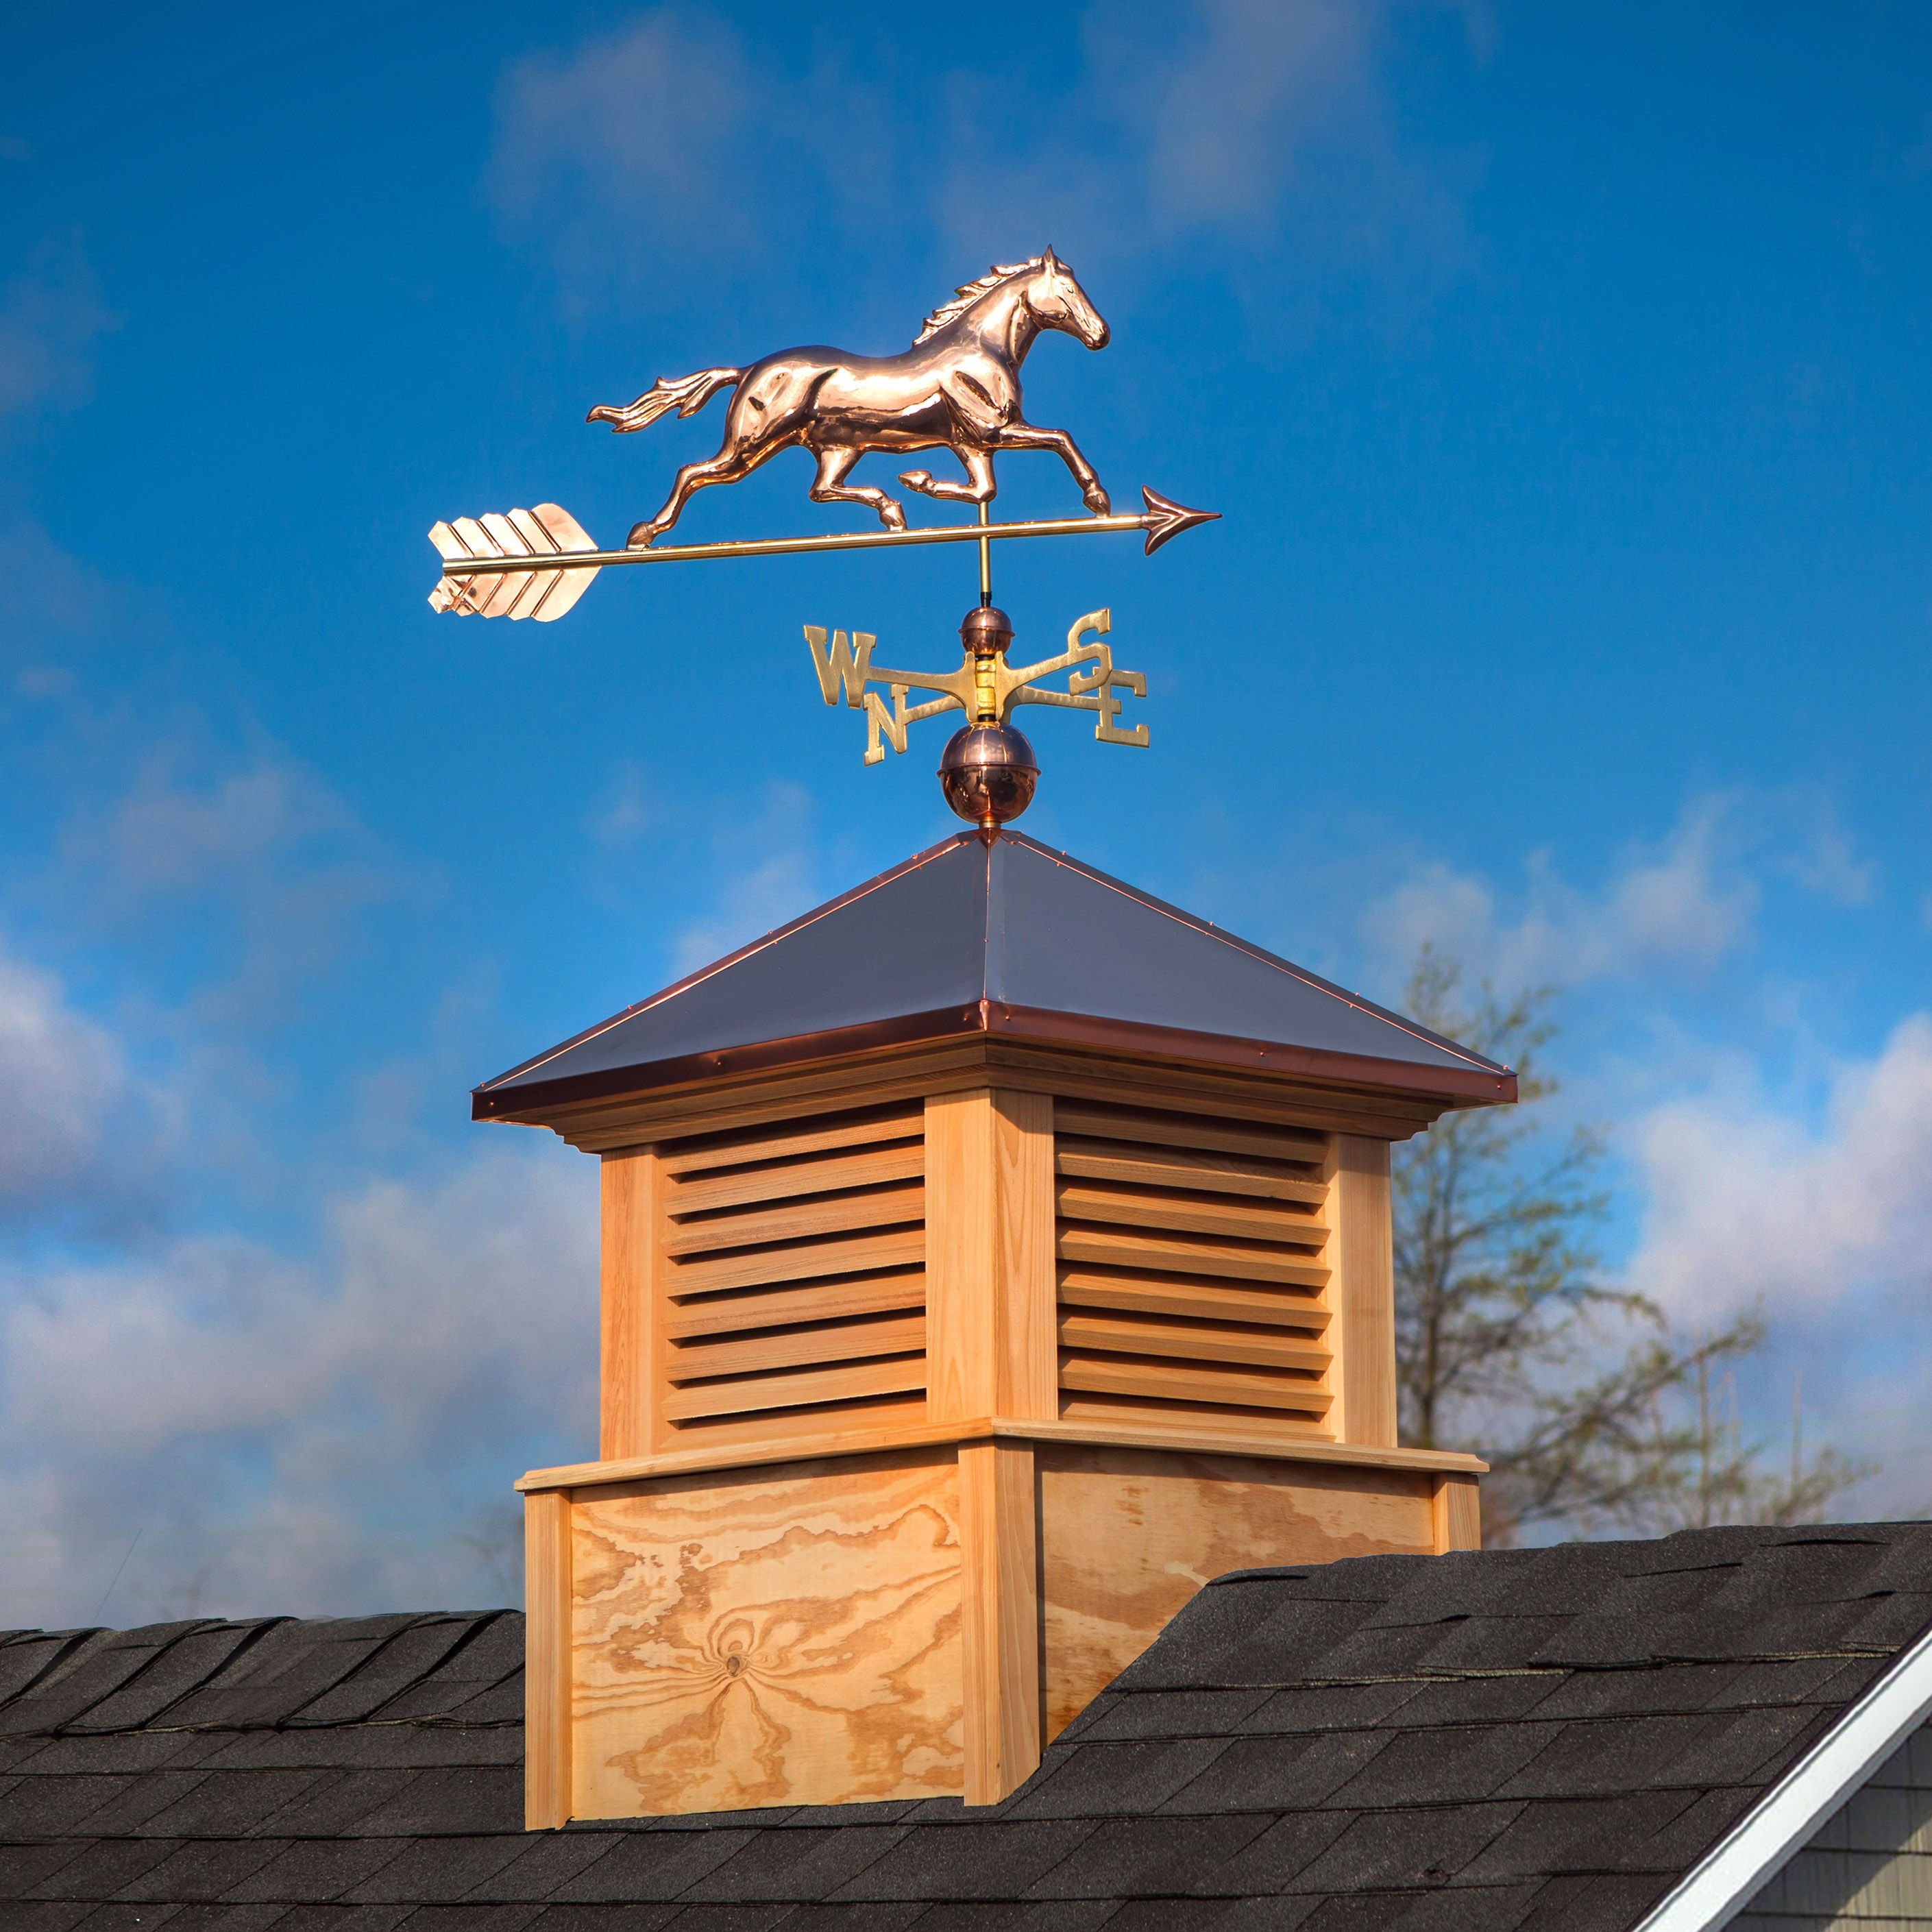 Trotting Horse Weathervane With The Manchester Wood Cupola With Copper Roof Copper Roof Cupolas Roof Decoration